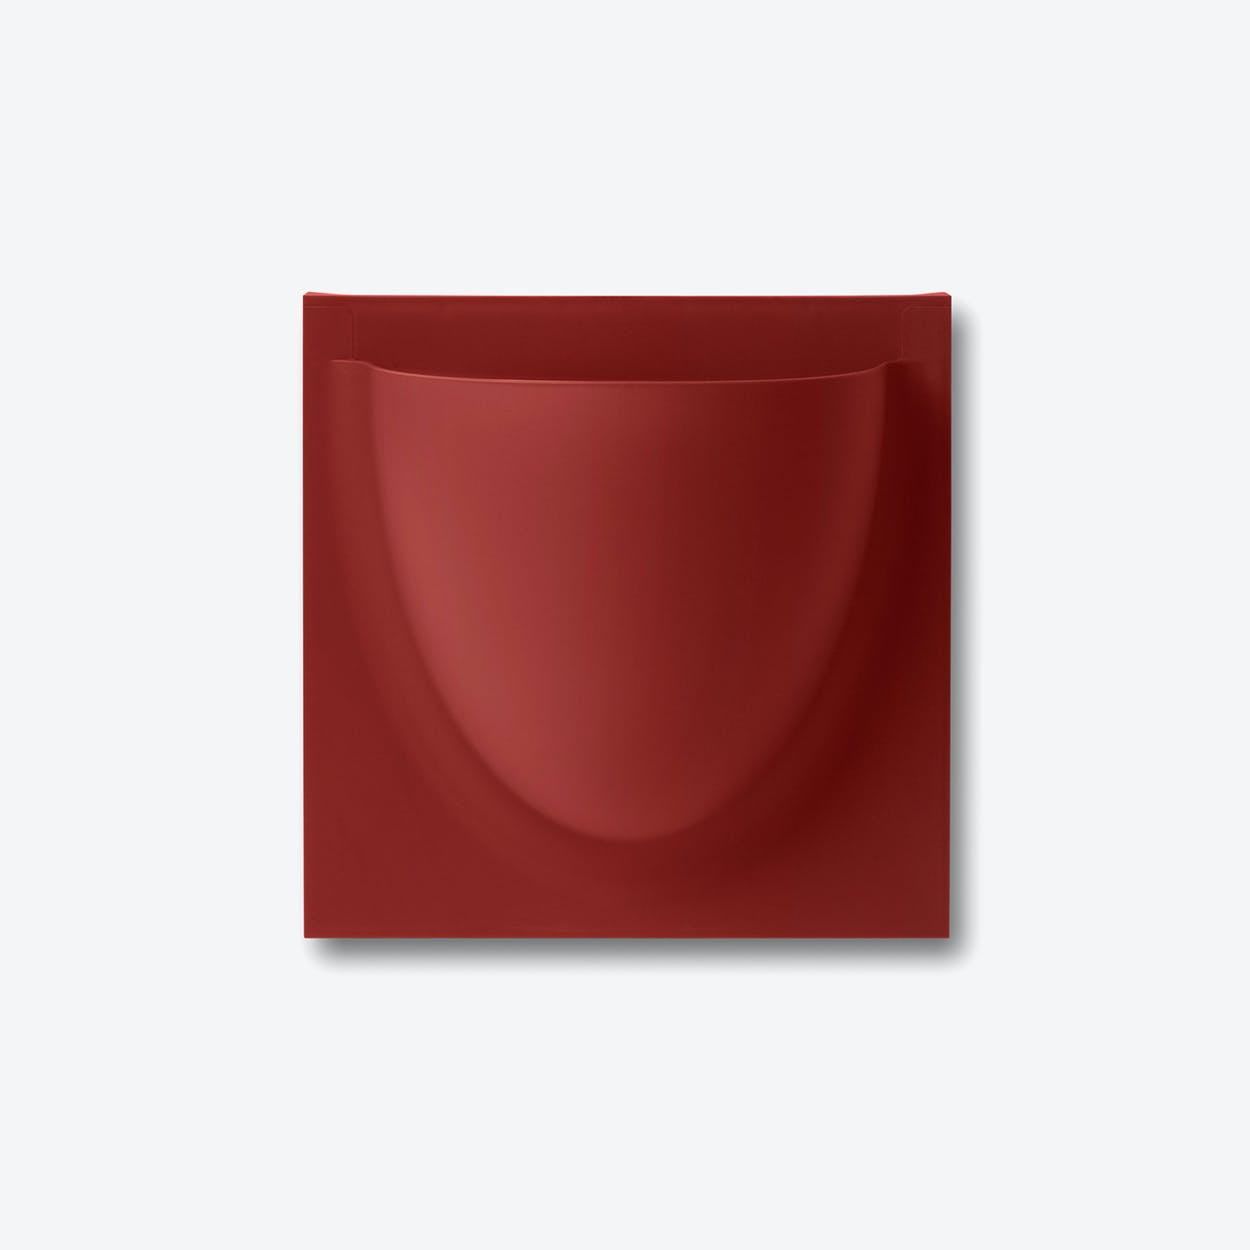 Wall Planter / Jar Mini in Ruby Red (Set of 2)